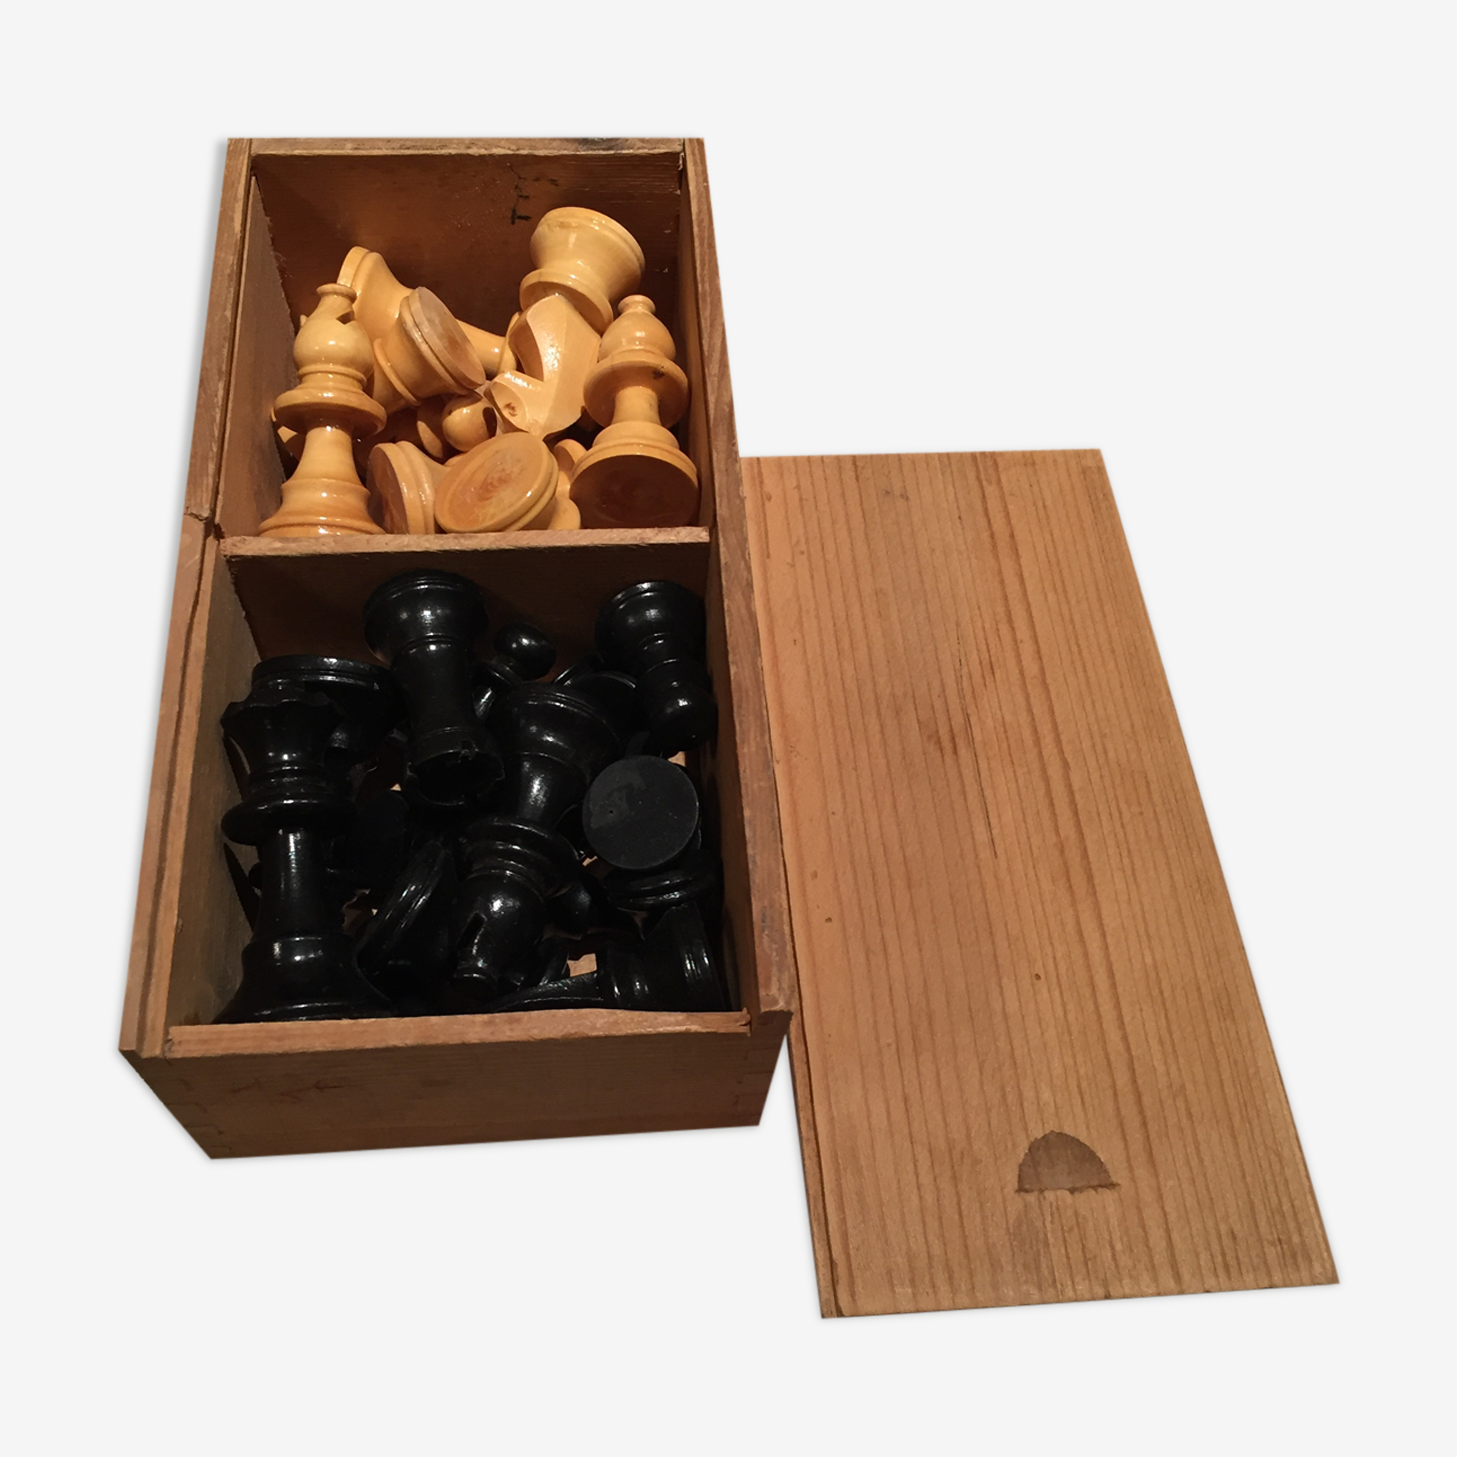 Pieces for chess game